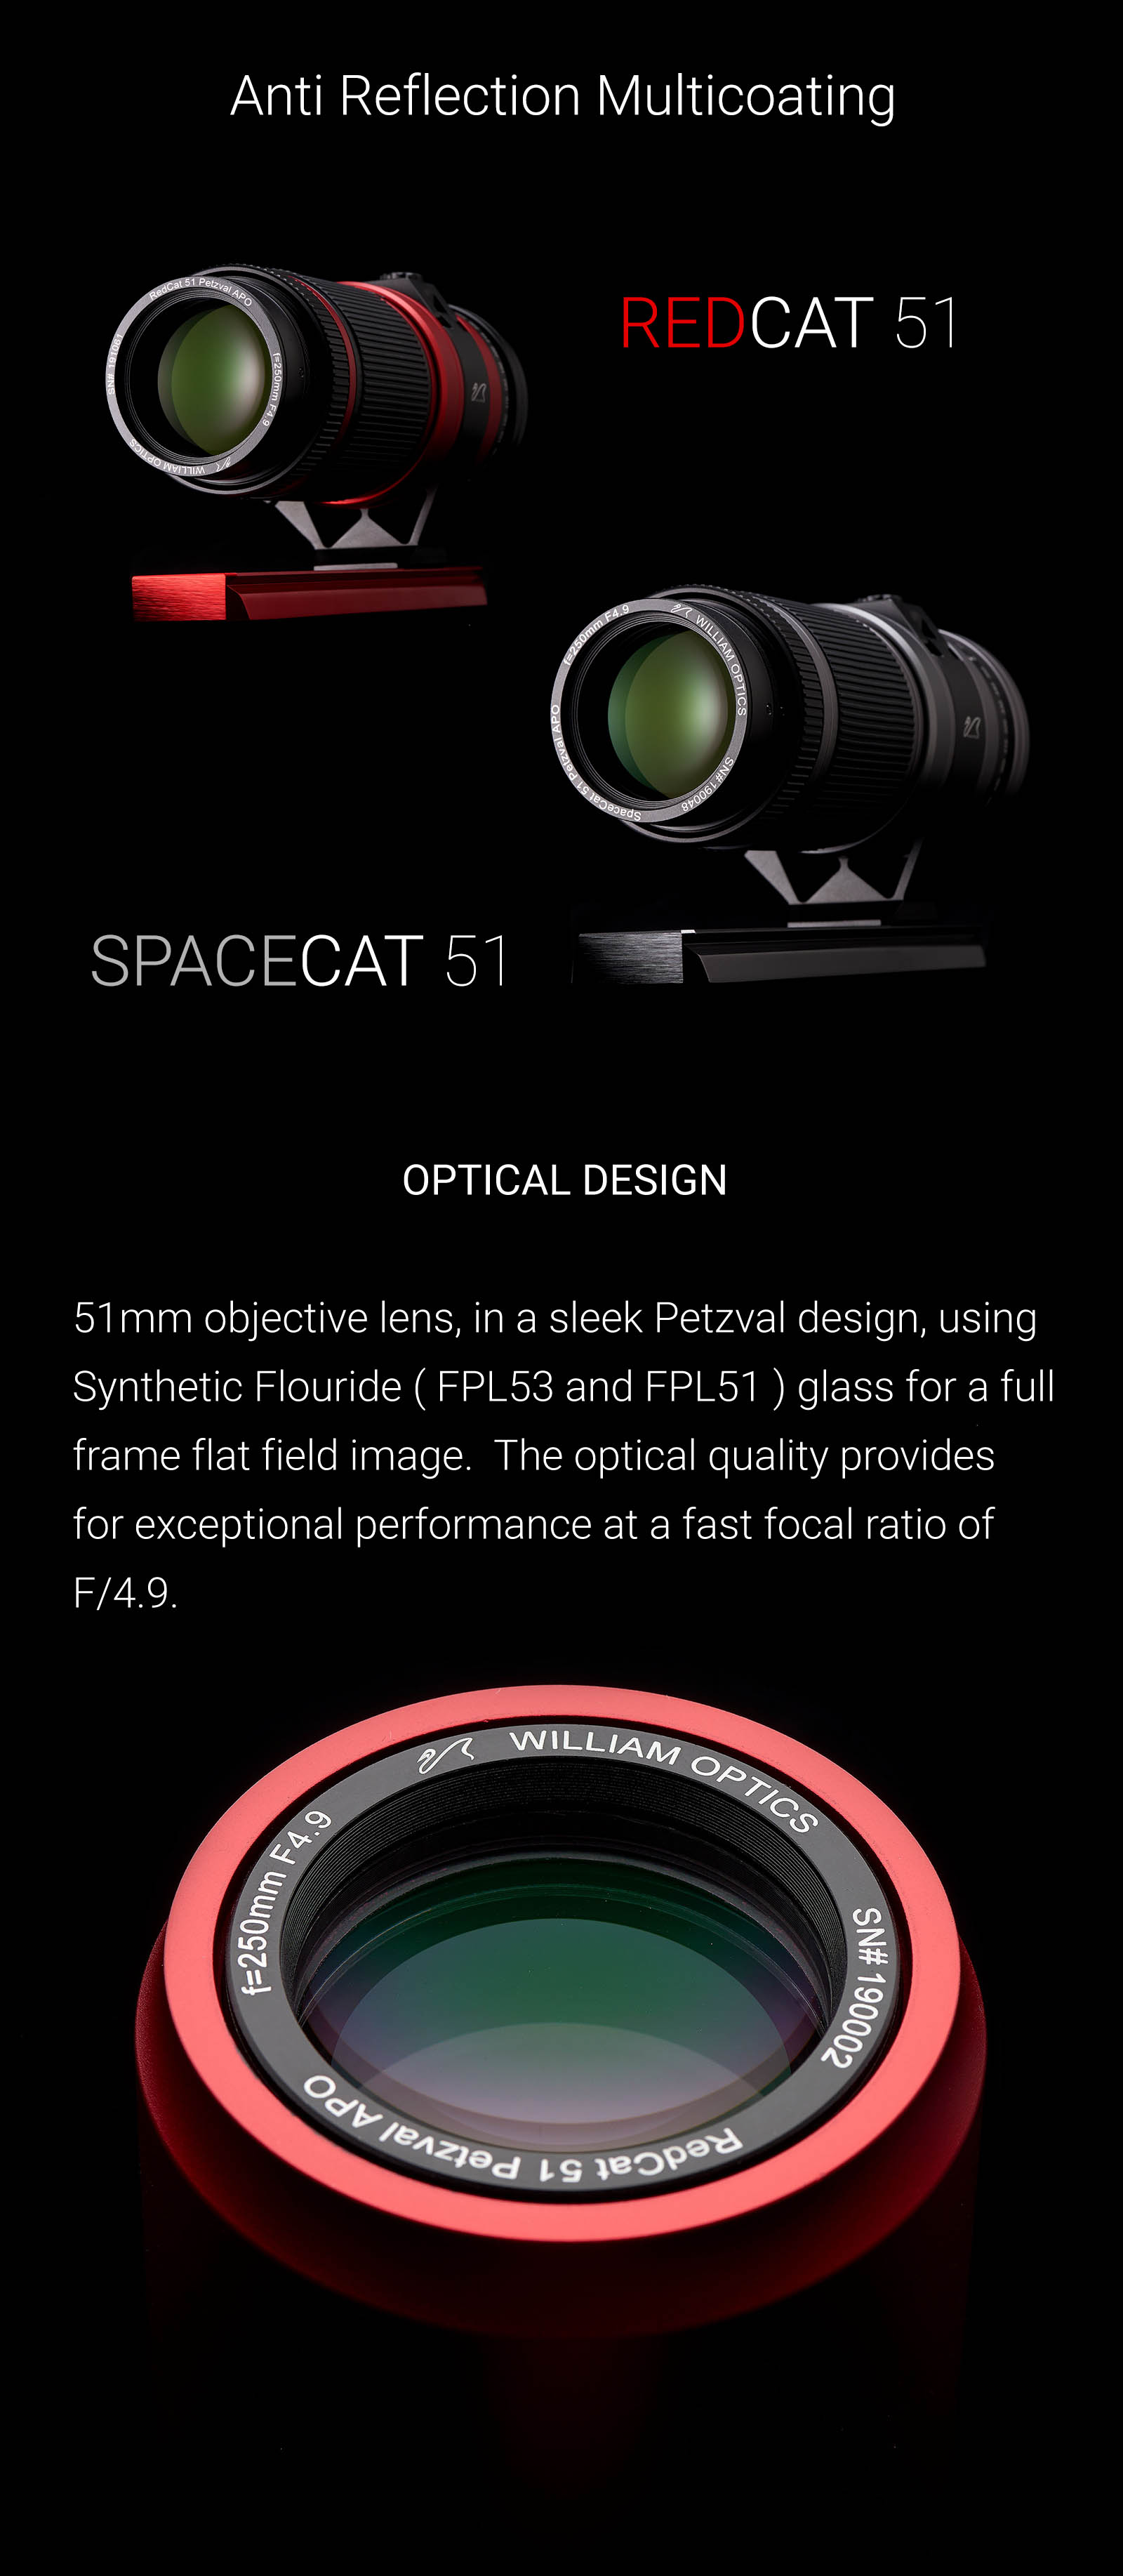 redcat-spacecat-51-optical-design.jpg